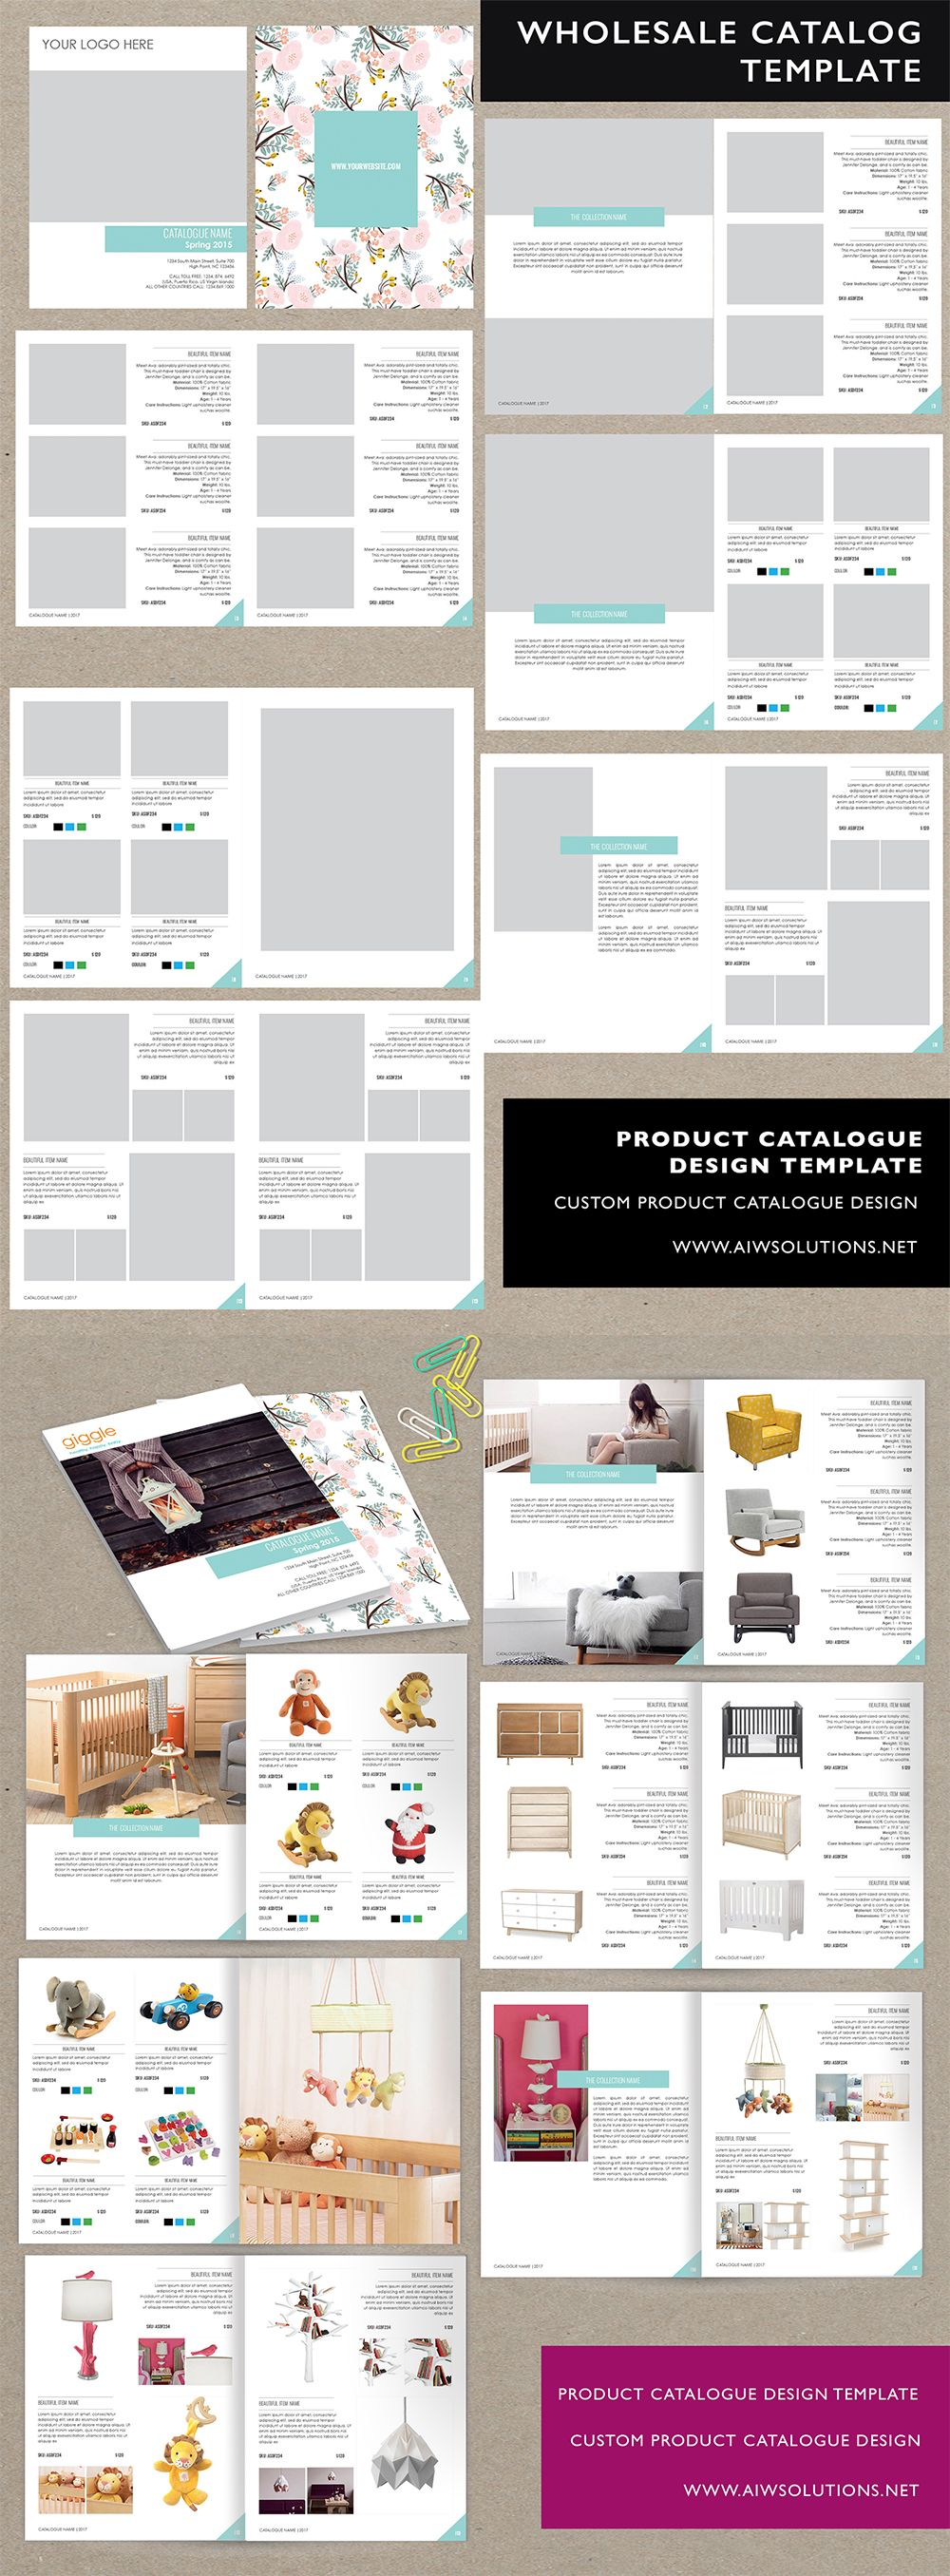 product catalog design templates